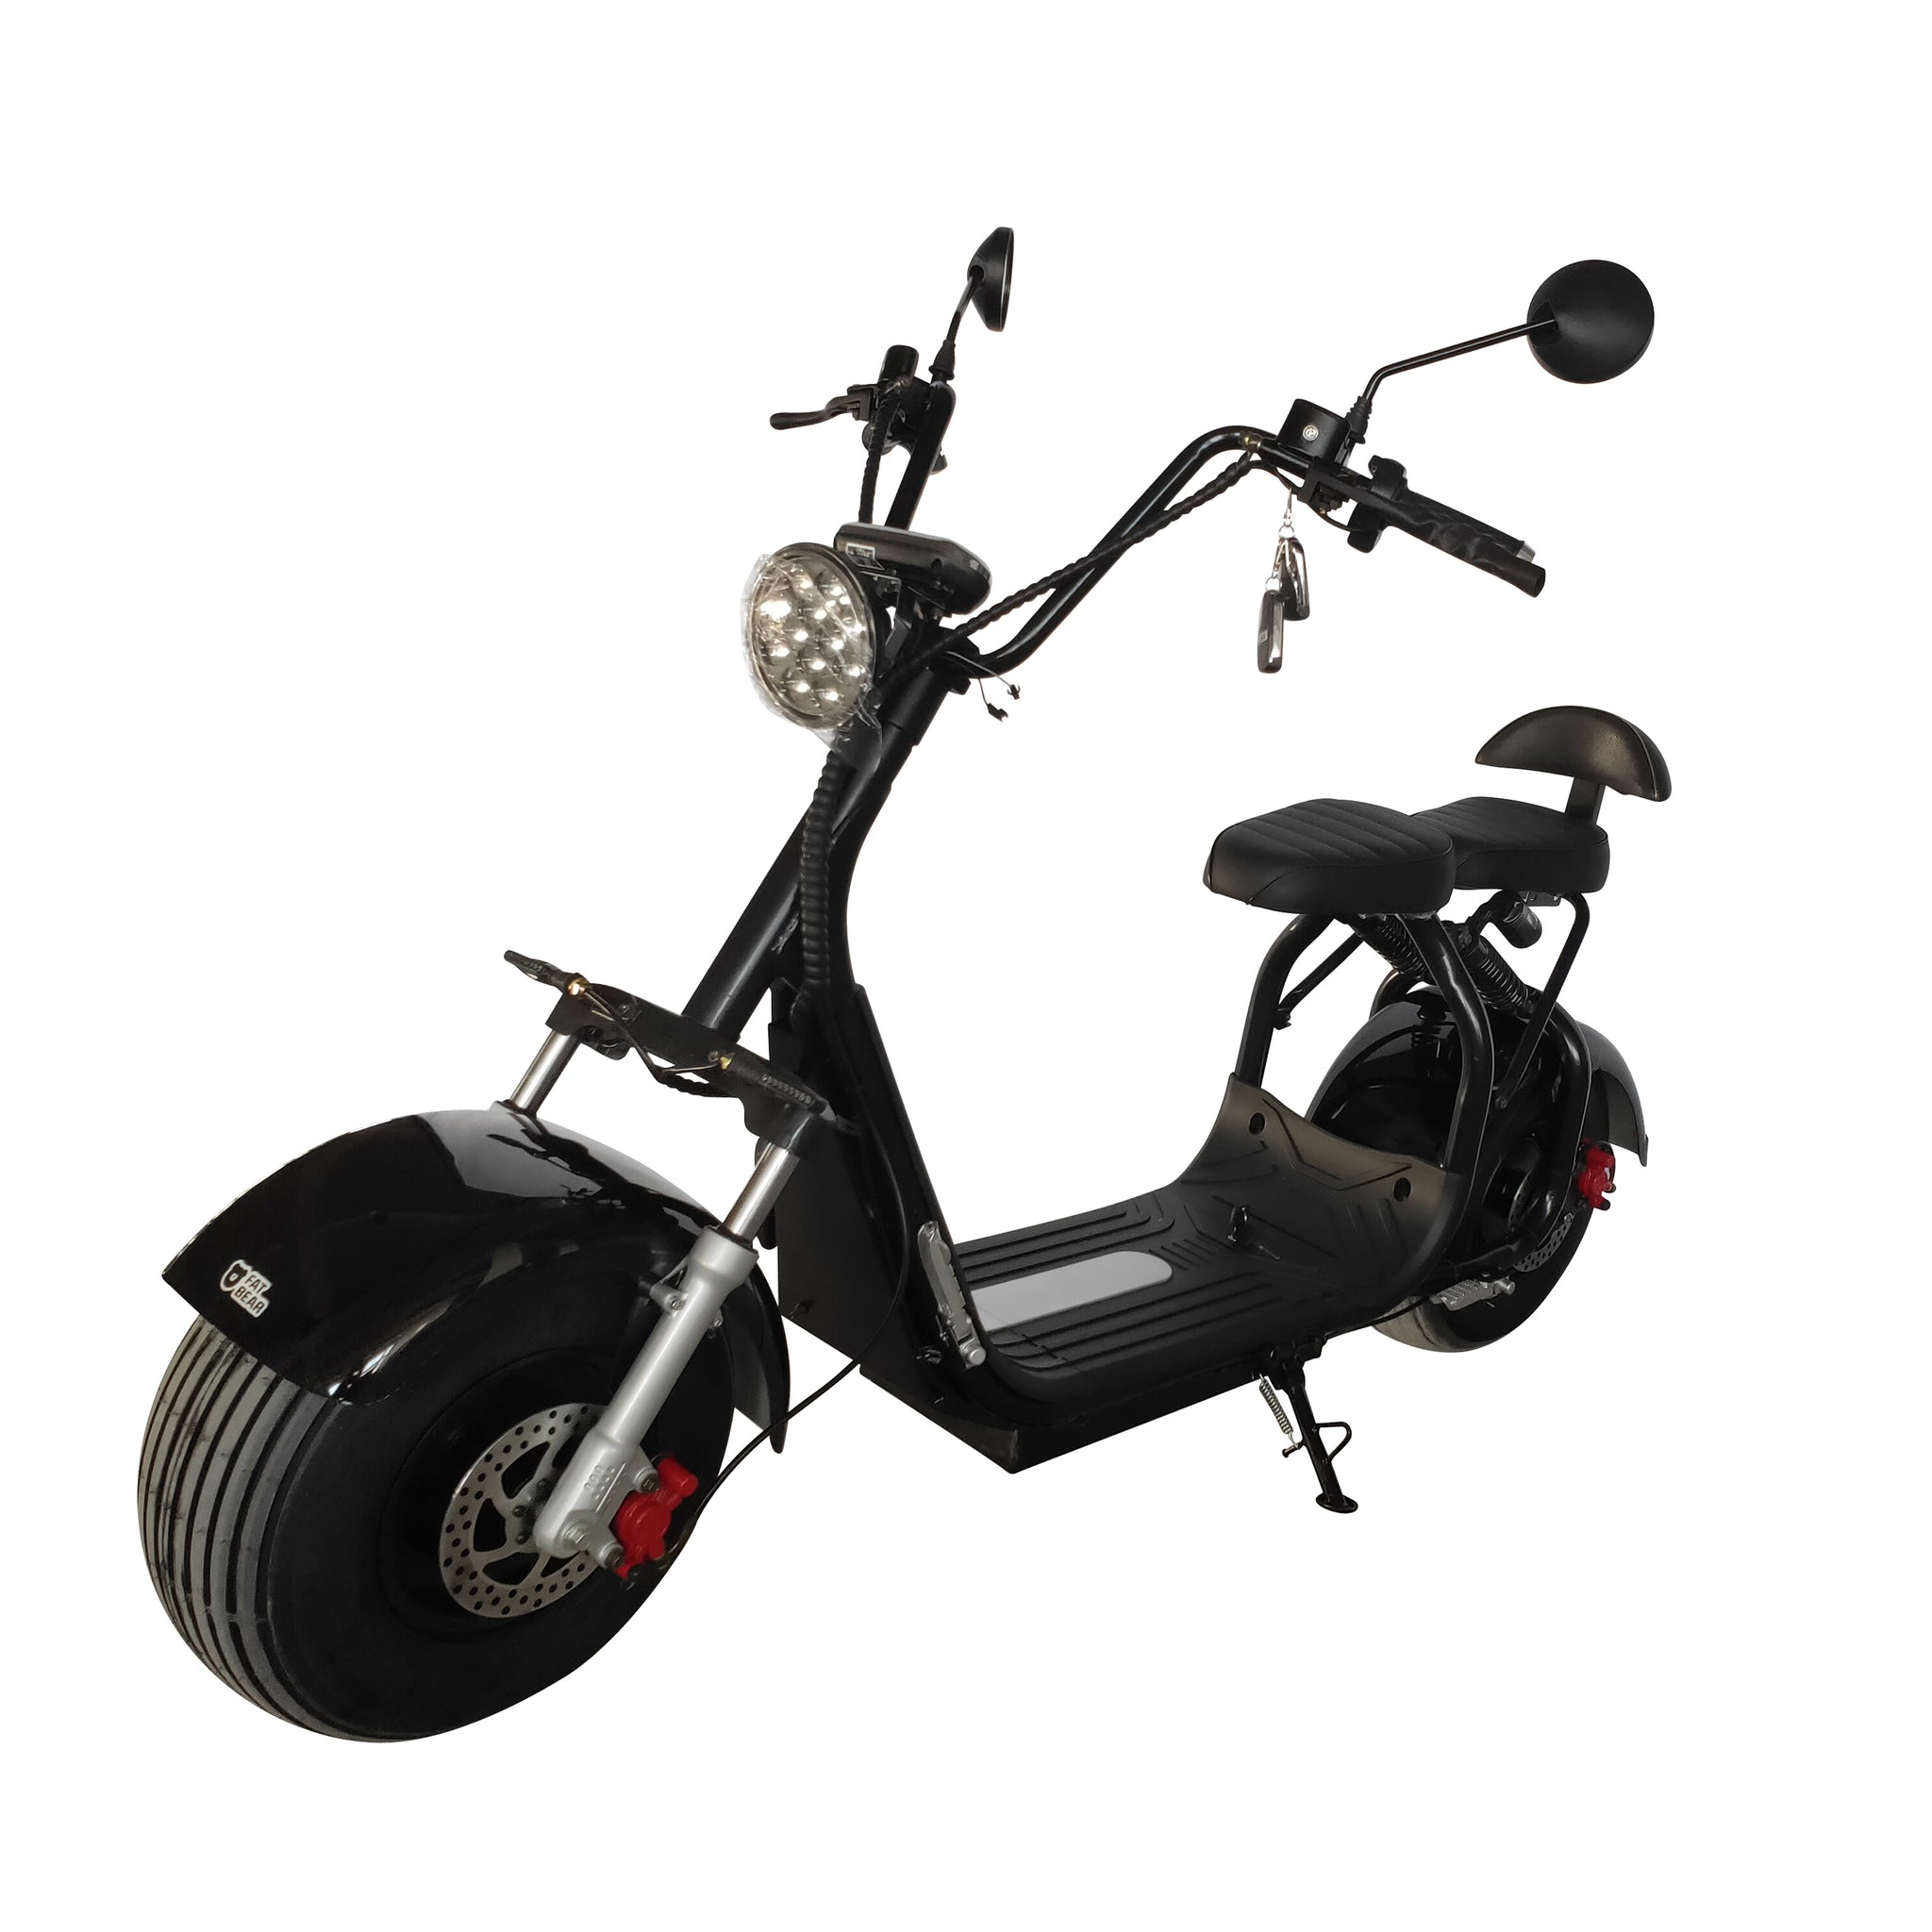 Fat City - Electric Fat Tire Scooter Moped